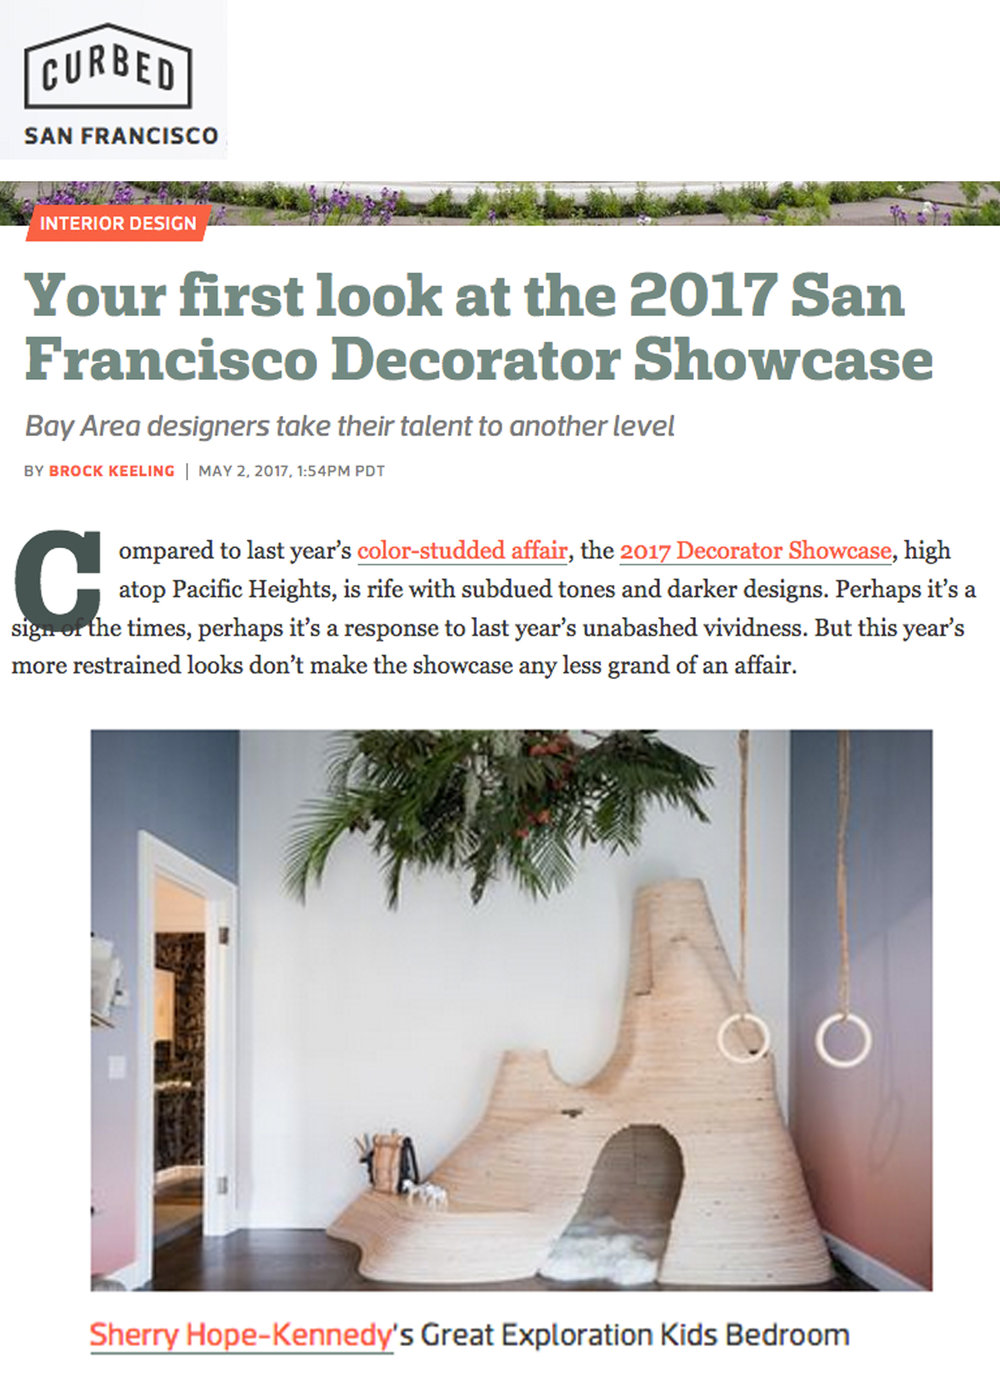 Curbed SF - CurbedSF gives a sneak peek of the SF Decorator Showcase. Link: http://bit.ly/2qZSpEv